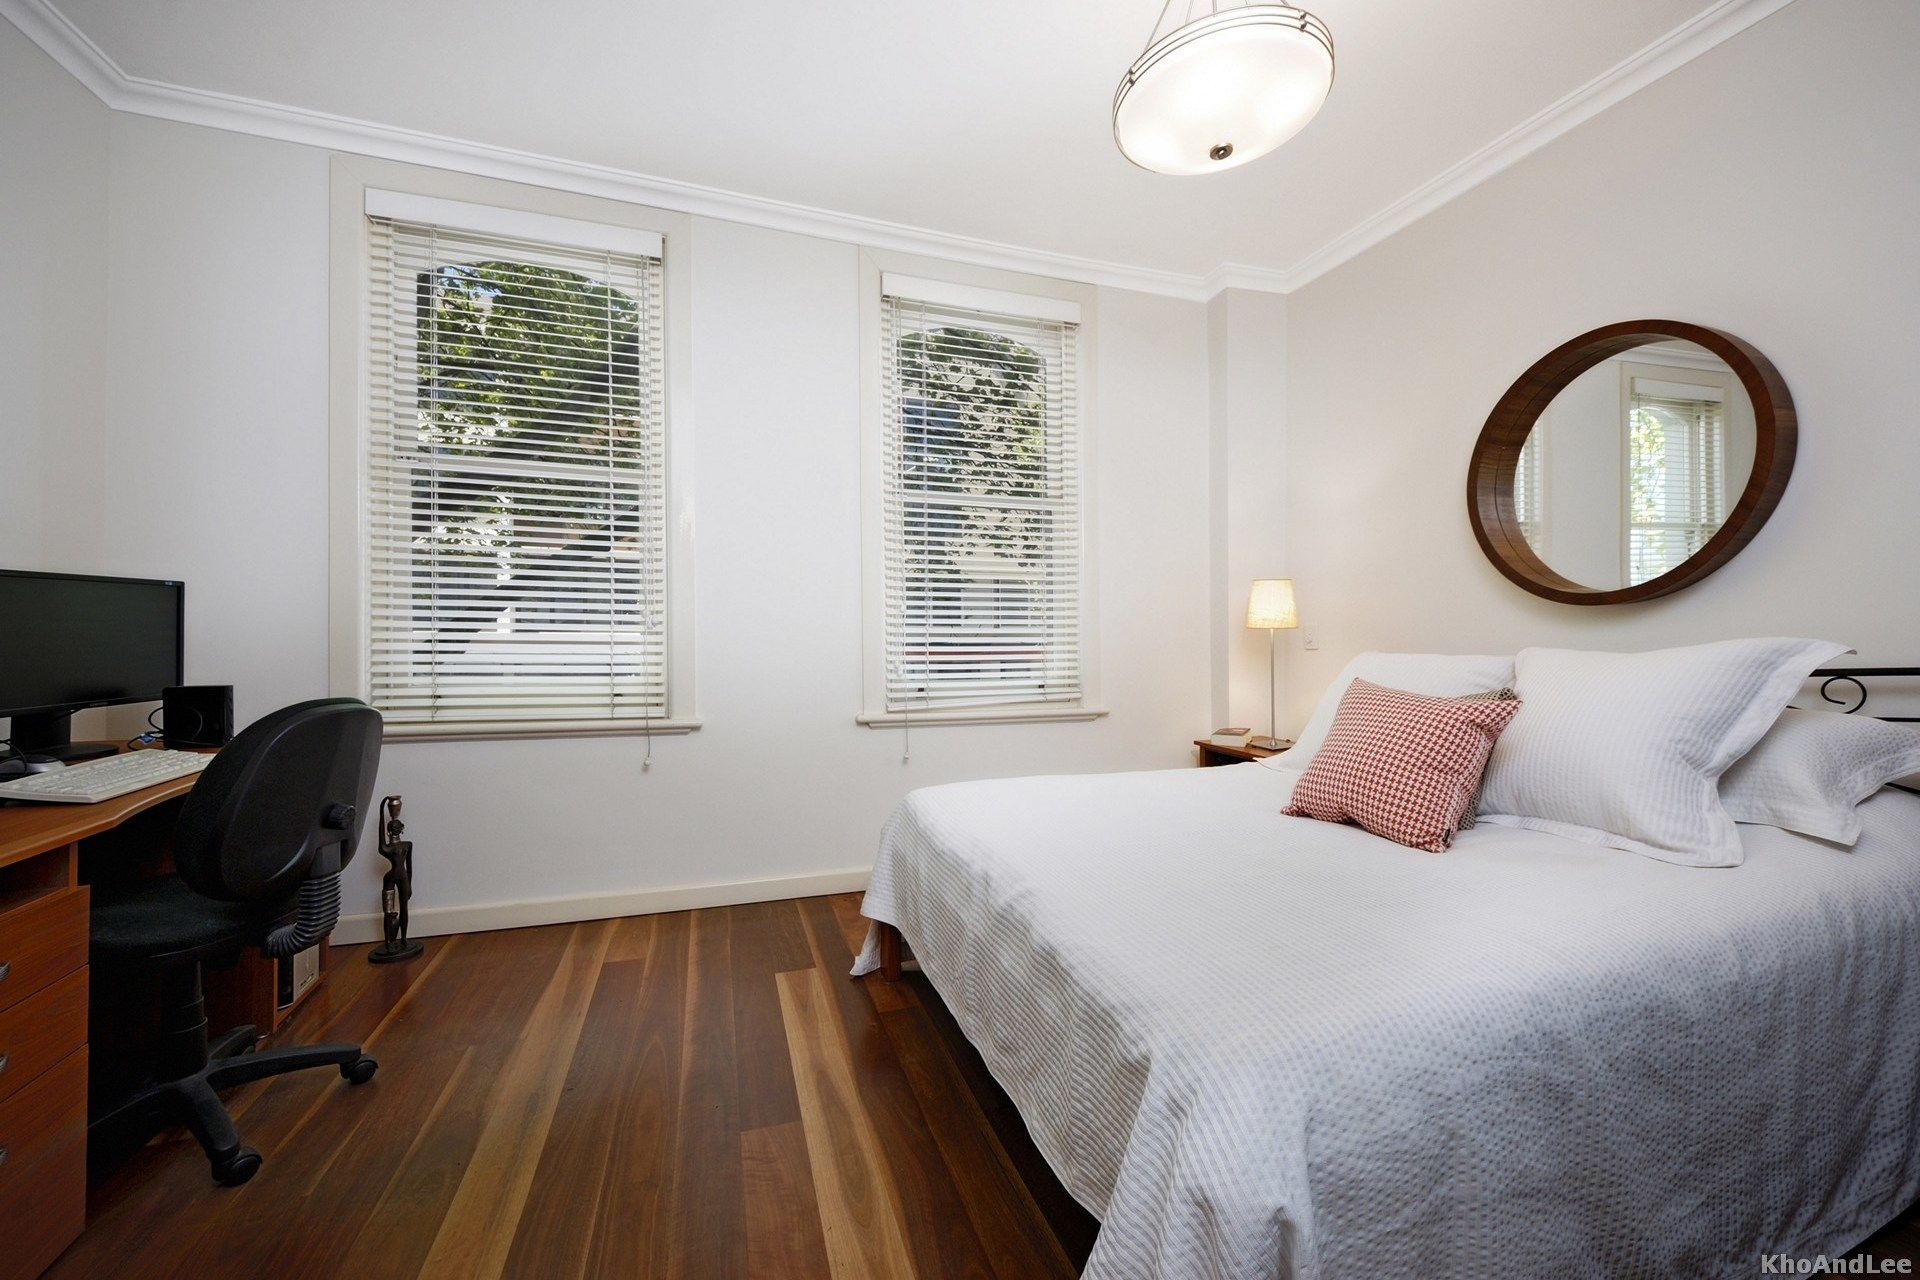 Refurbished Terrace - Open For Inspection this Saturday 20/10 at 1:00 PM-1:30 PM